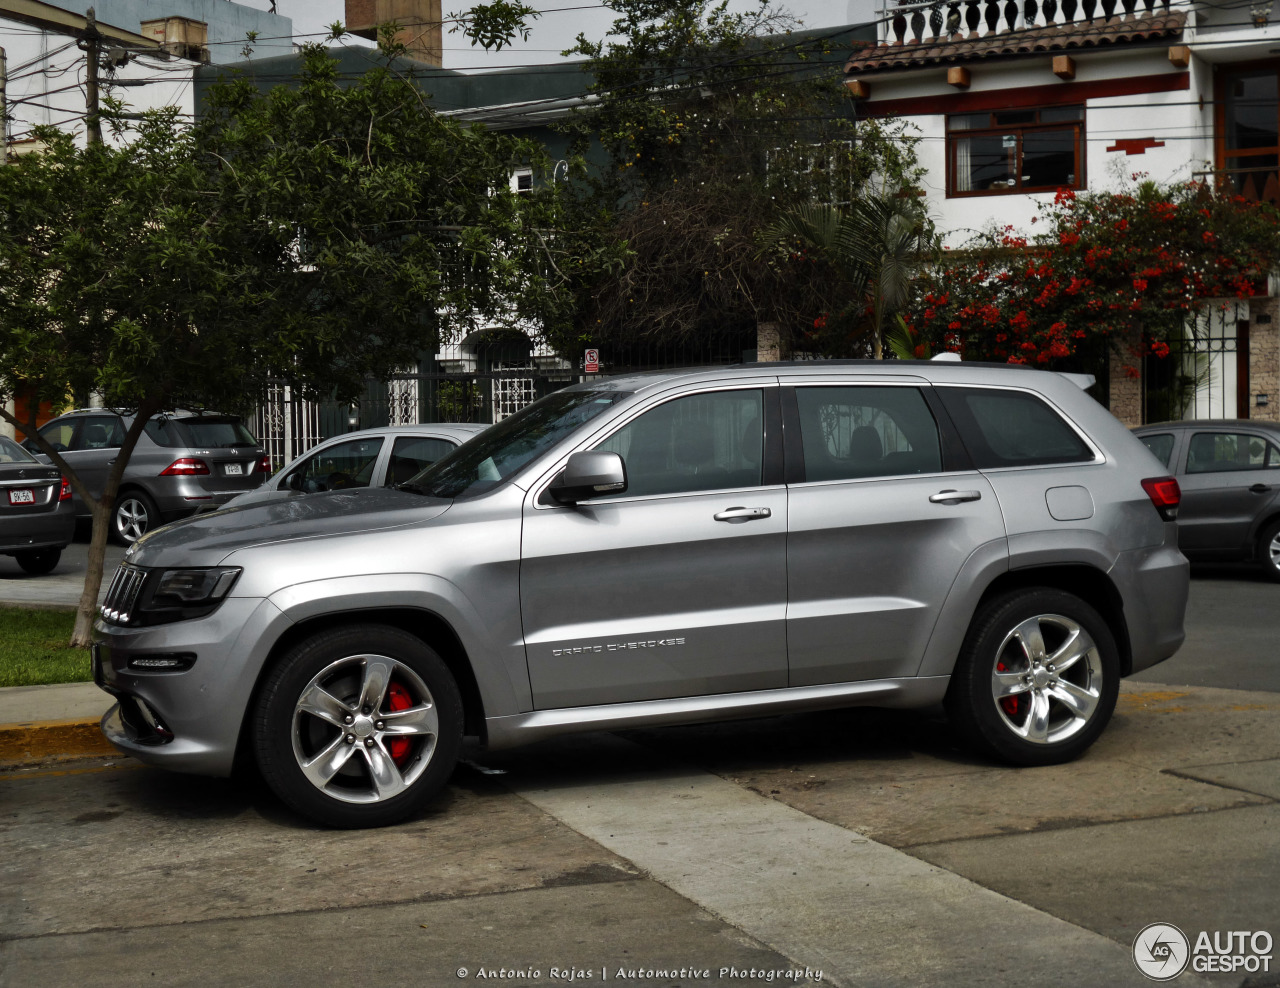 jeep grand cherokee srt 8 2013 27 julio 2017 autogespot. Black Bedroom Furniture Sets. Home Design Ideas